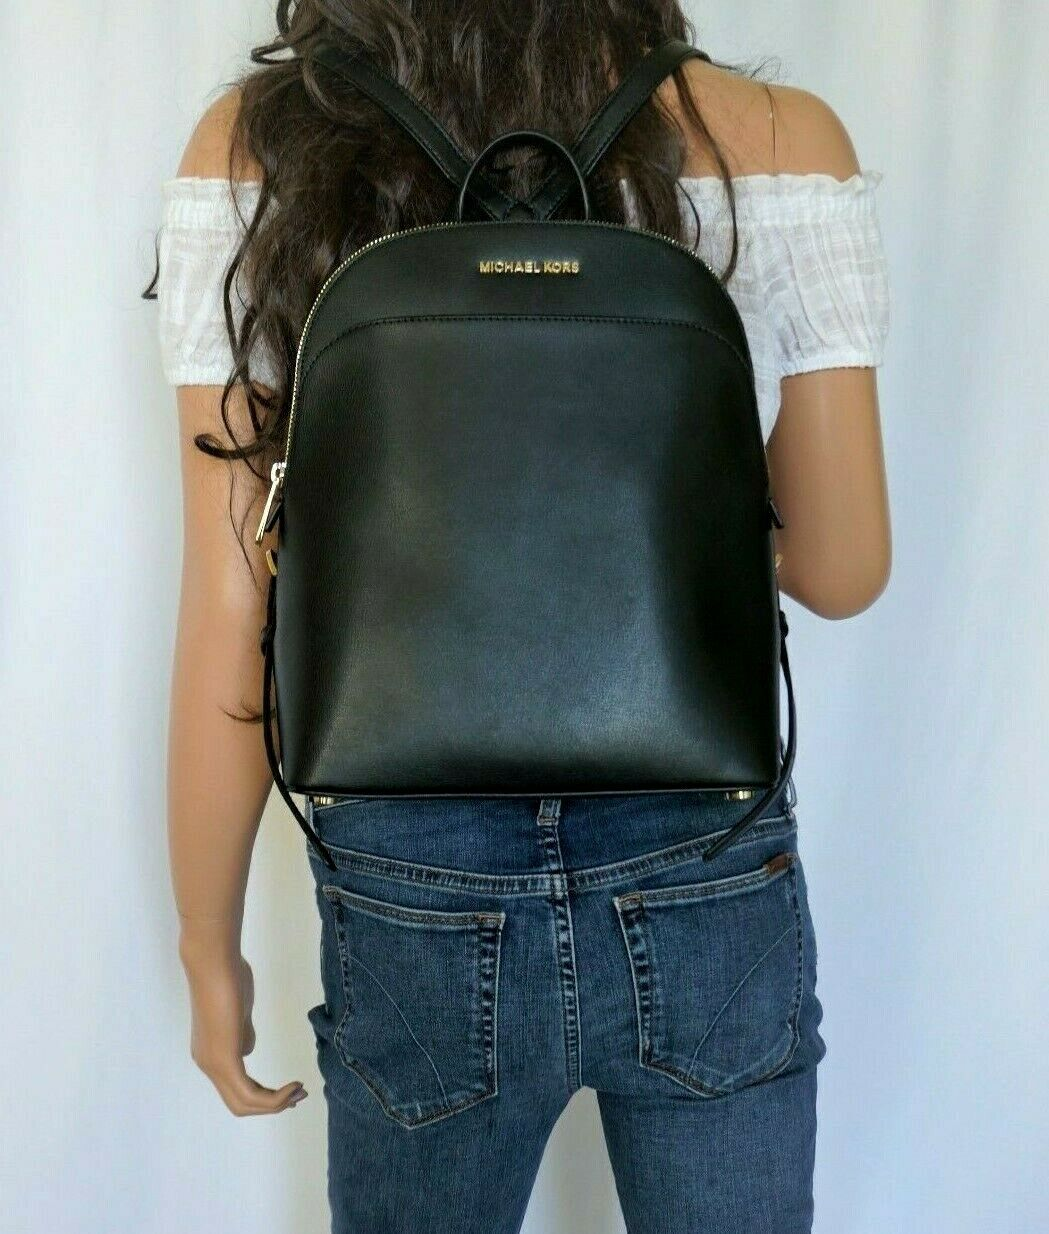 MICHAEL KORS EMMY LARGE DOME BACKPACK SMOOTH LEATHER BLACK/G